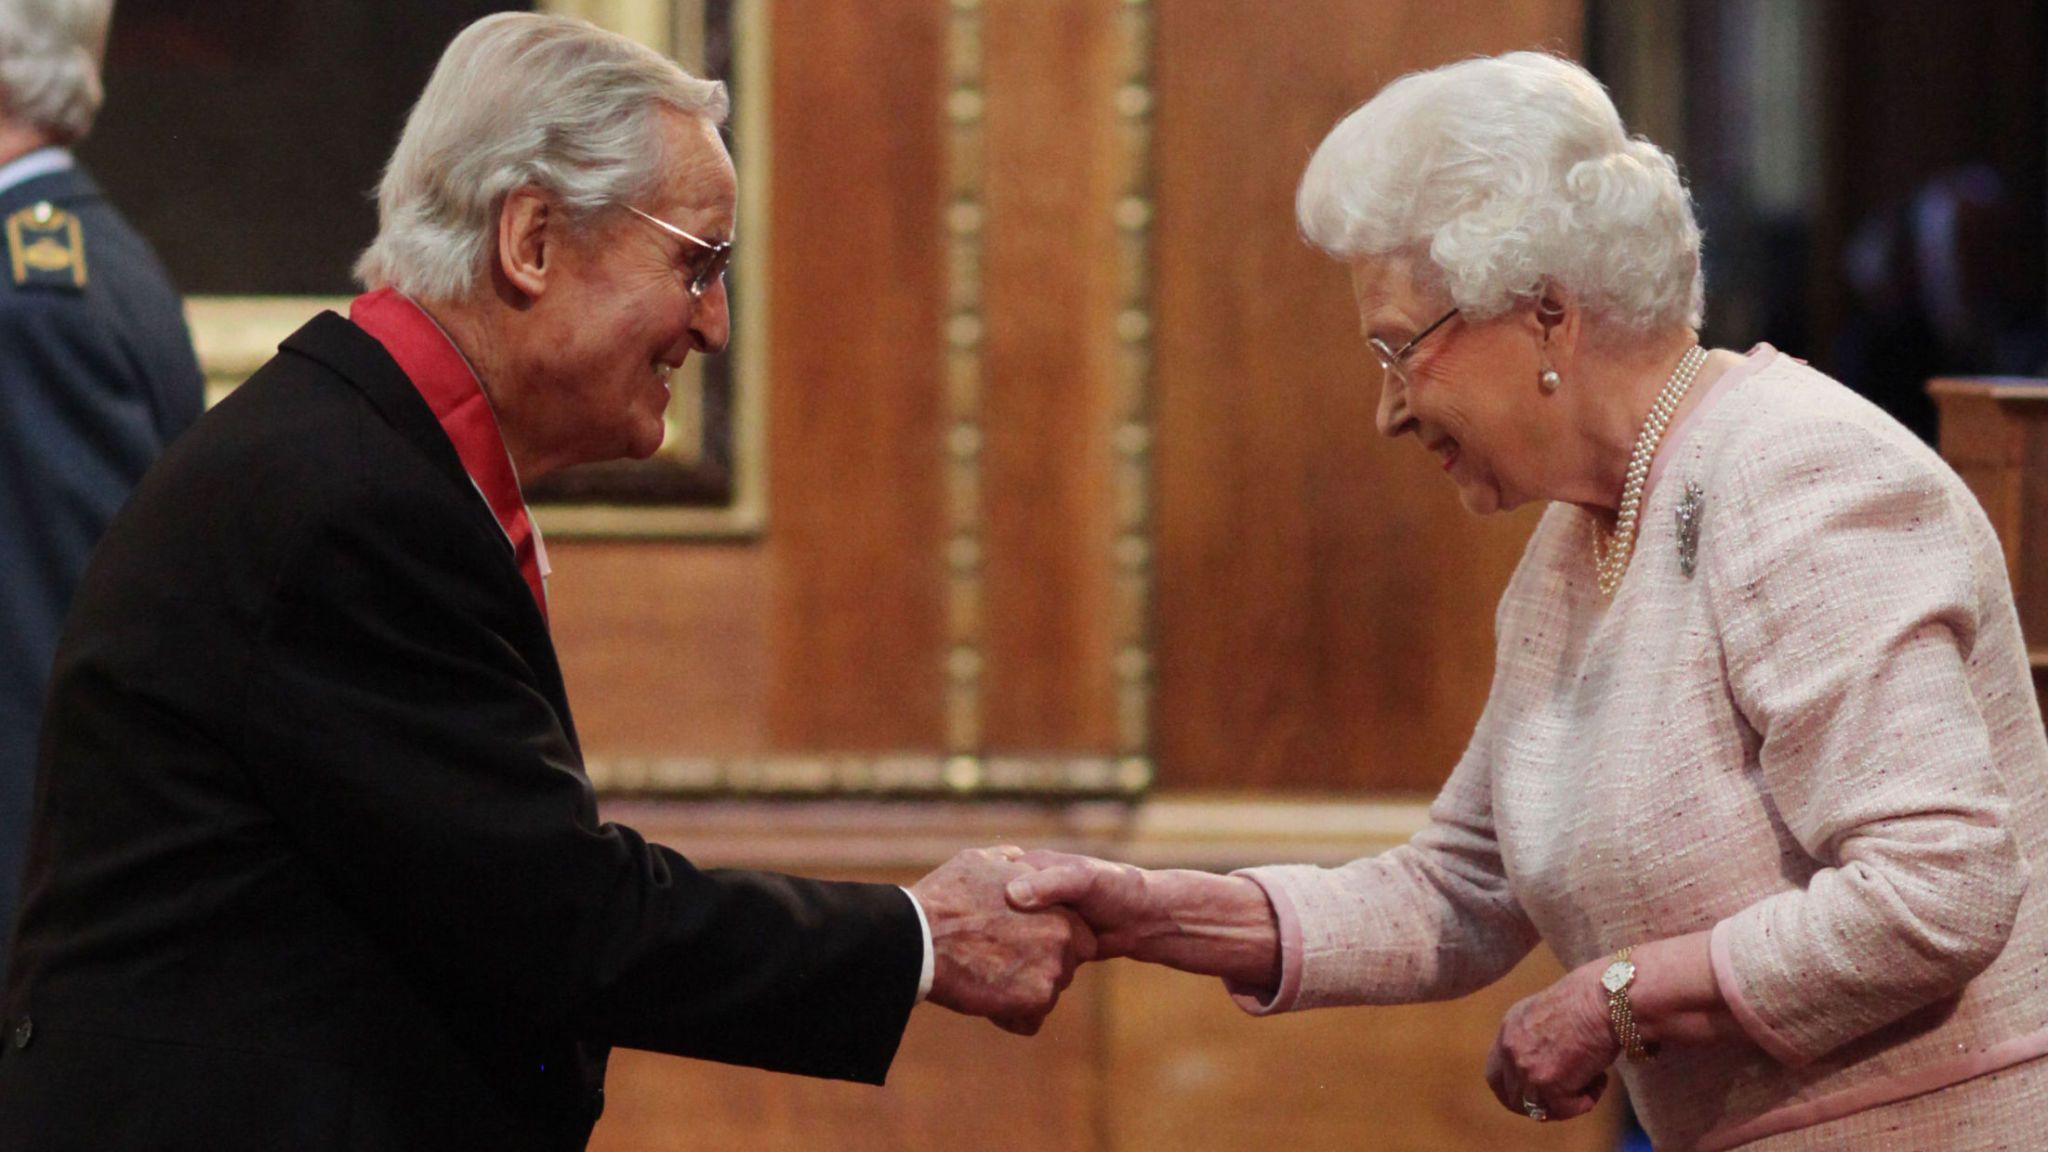 Nicholas Parsons is made a CBE (Commander of the Order of the British Empire) by Queen Elizabeth II at Windsor Castle